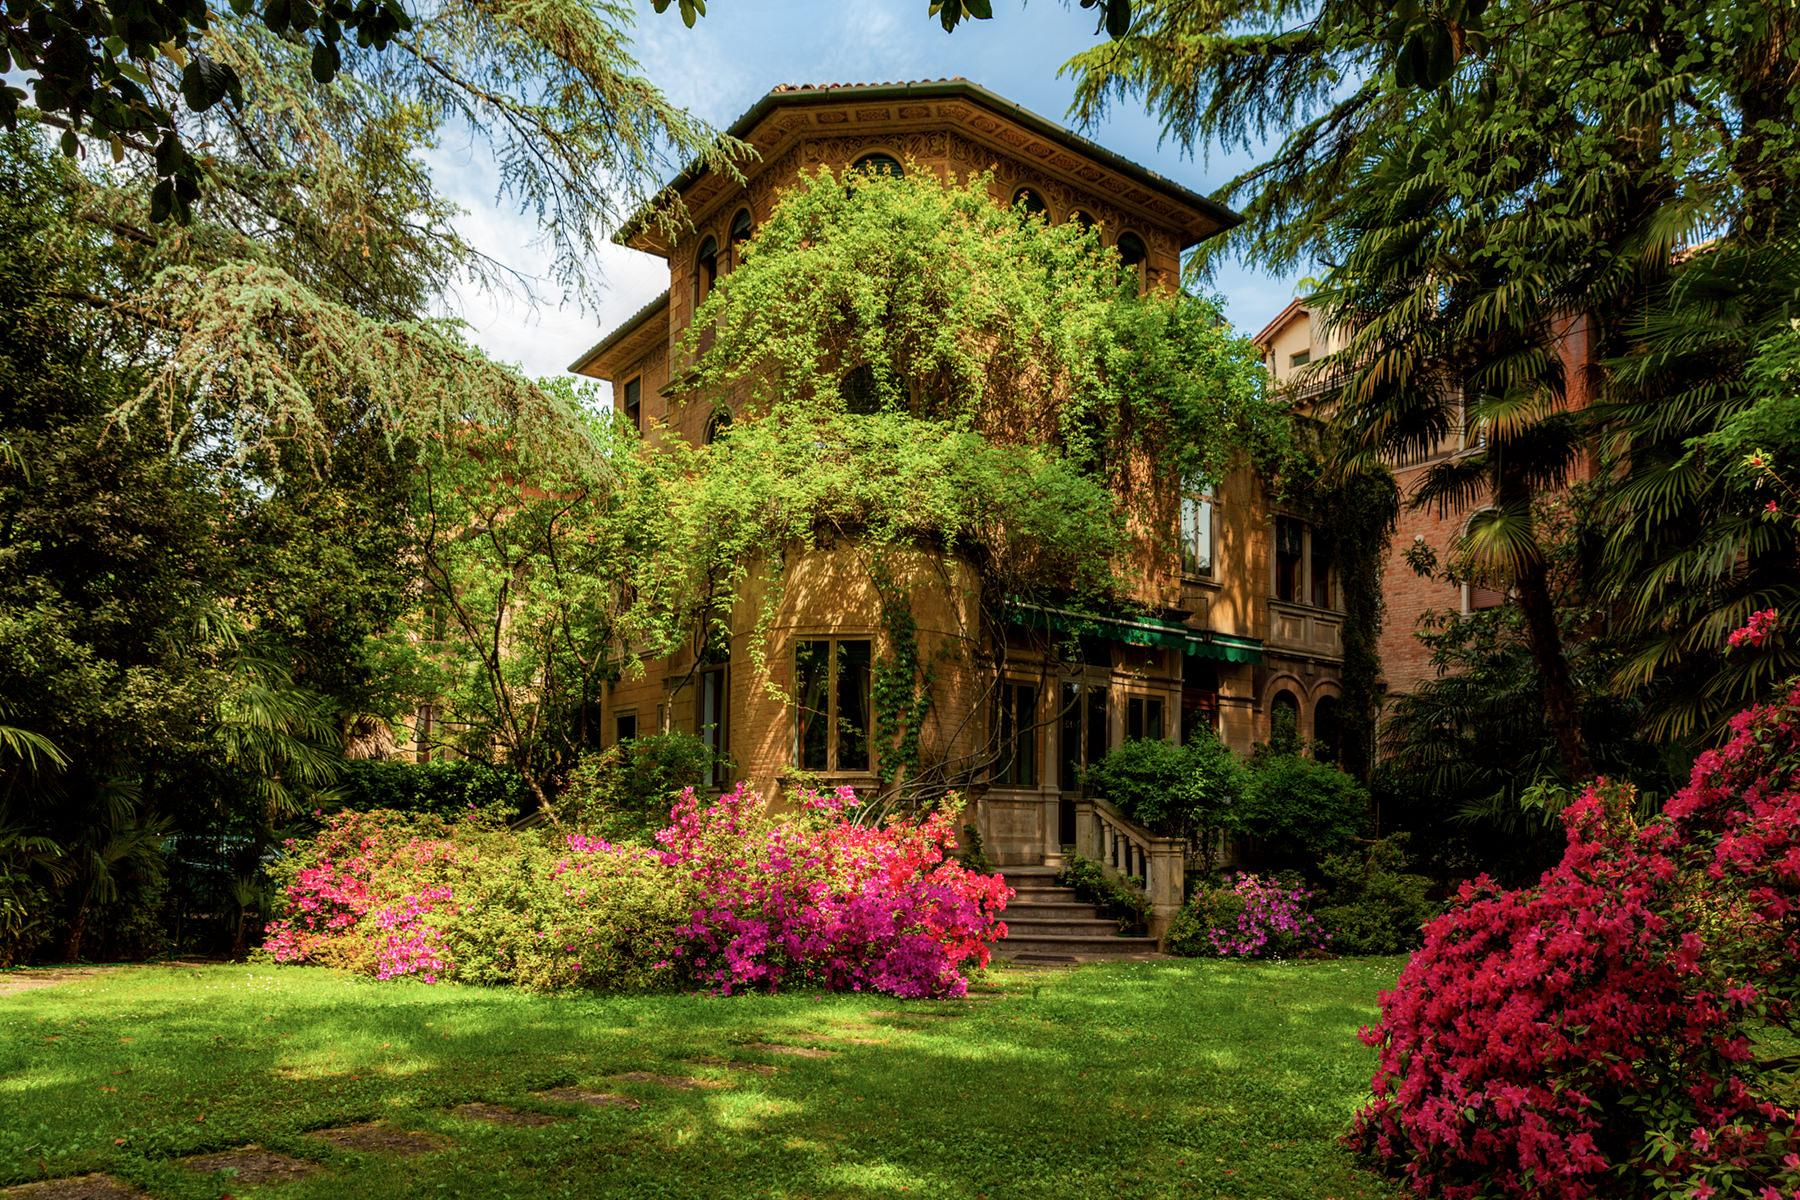 Wonderful Art Nouveau villa in the heart of Treviso - 1